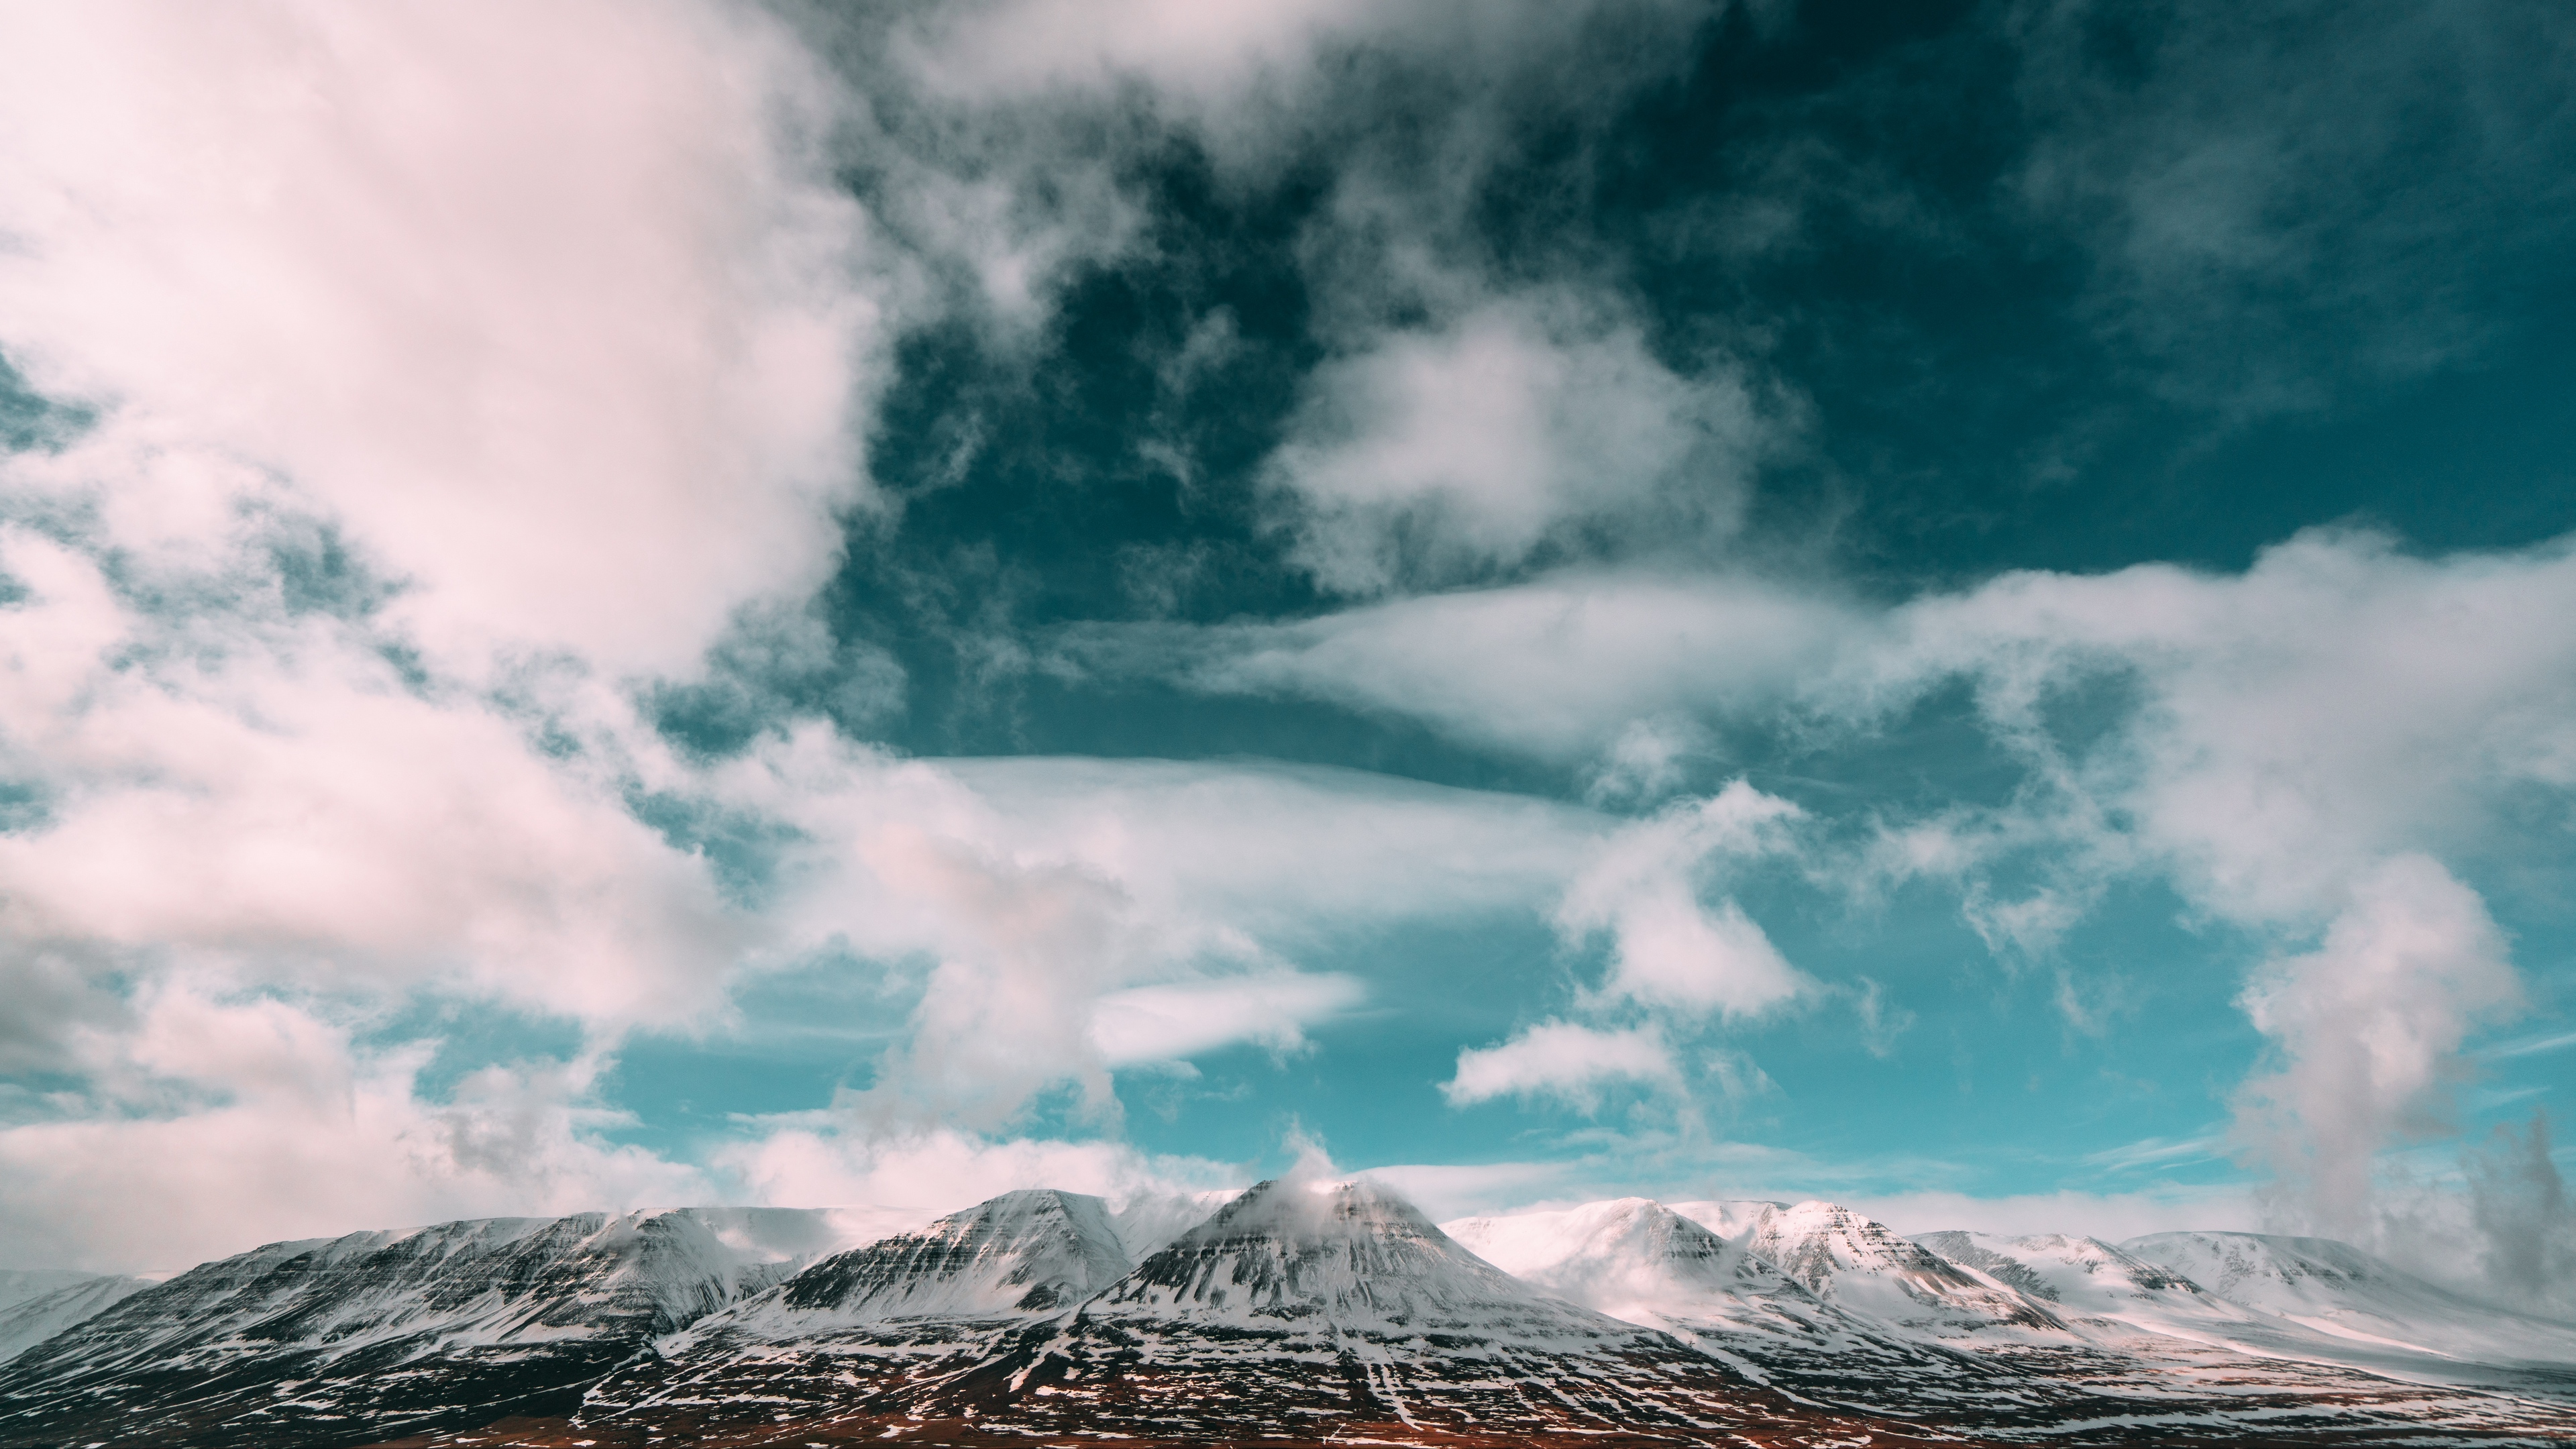 mountains clouds sky iceland 4k 1541117297 - mountains, clouds, sky, iceland 4k - Sky, Mountains, Clouds